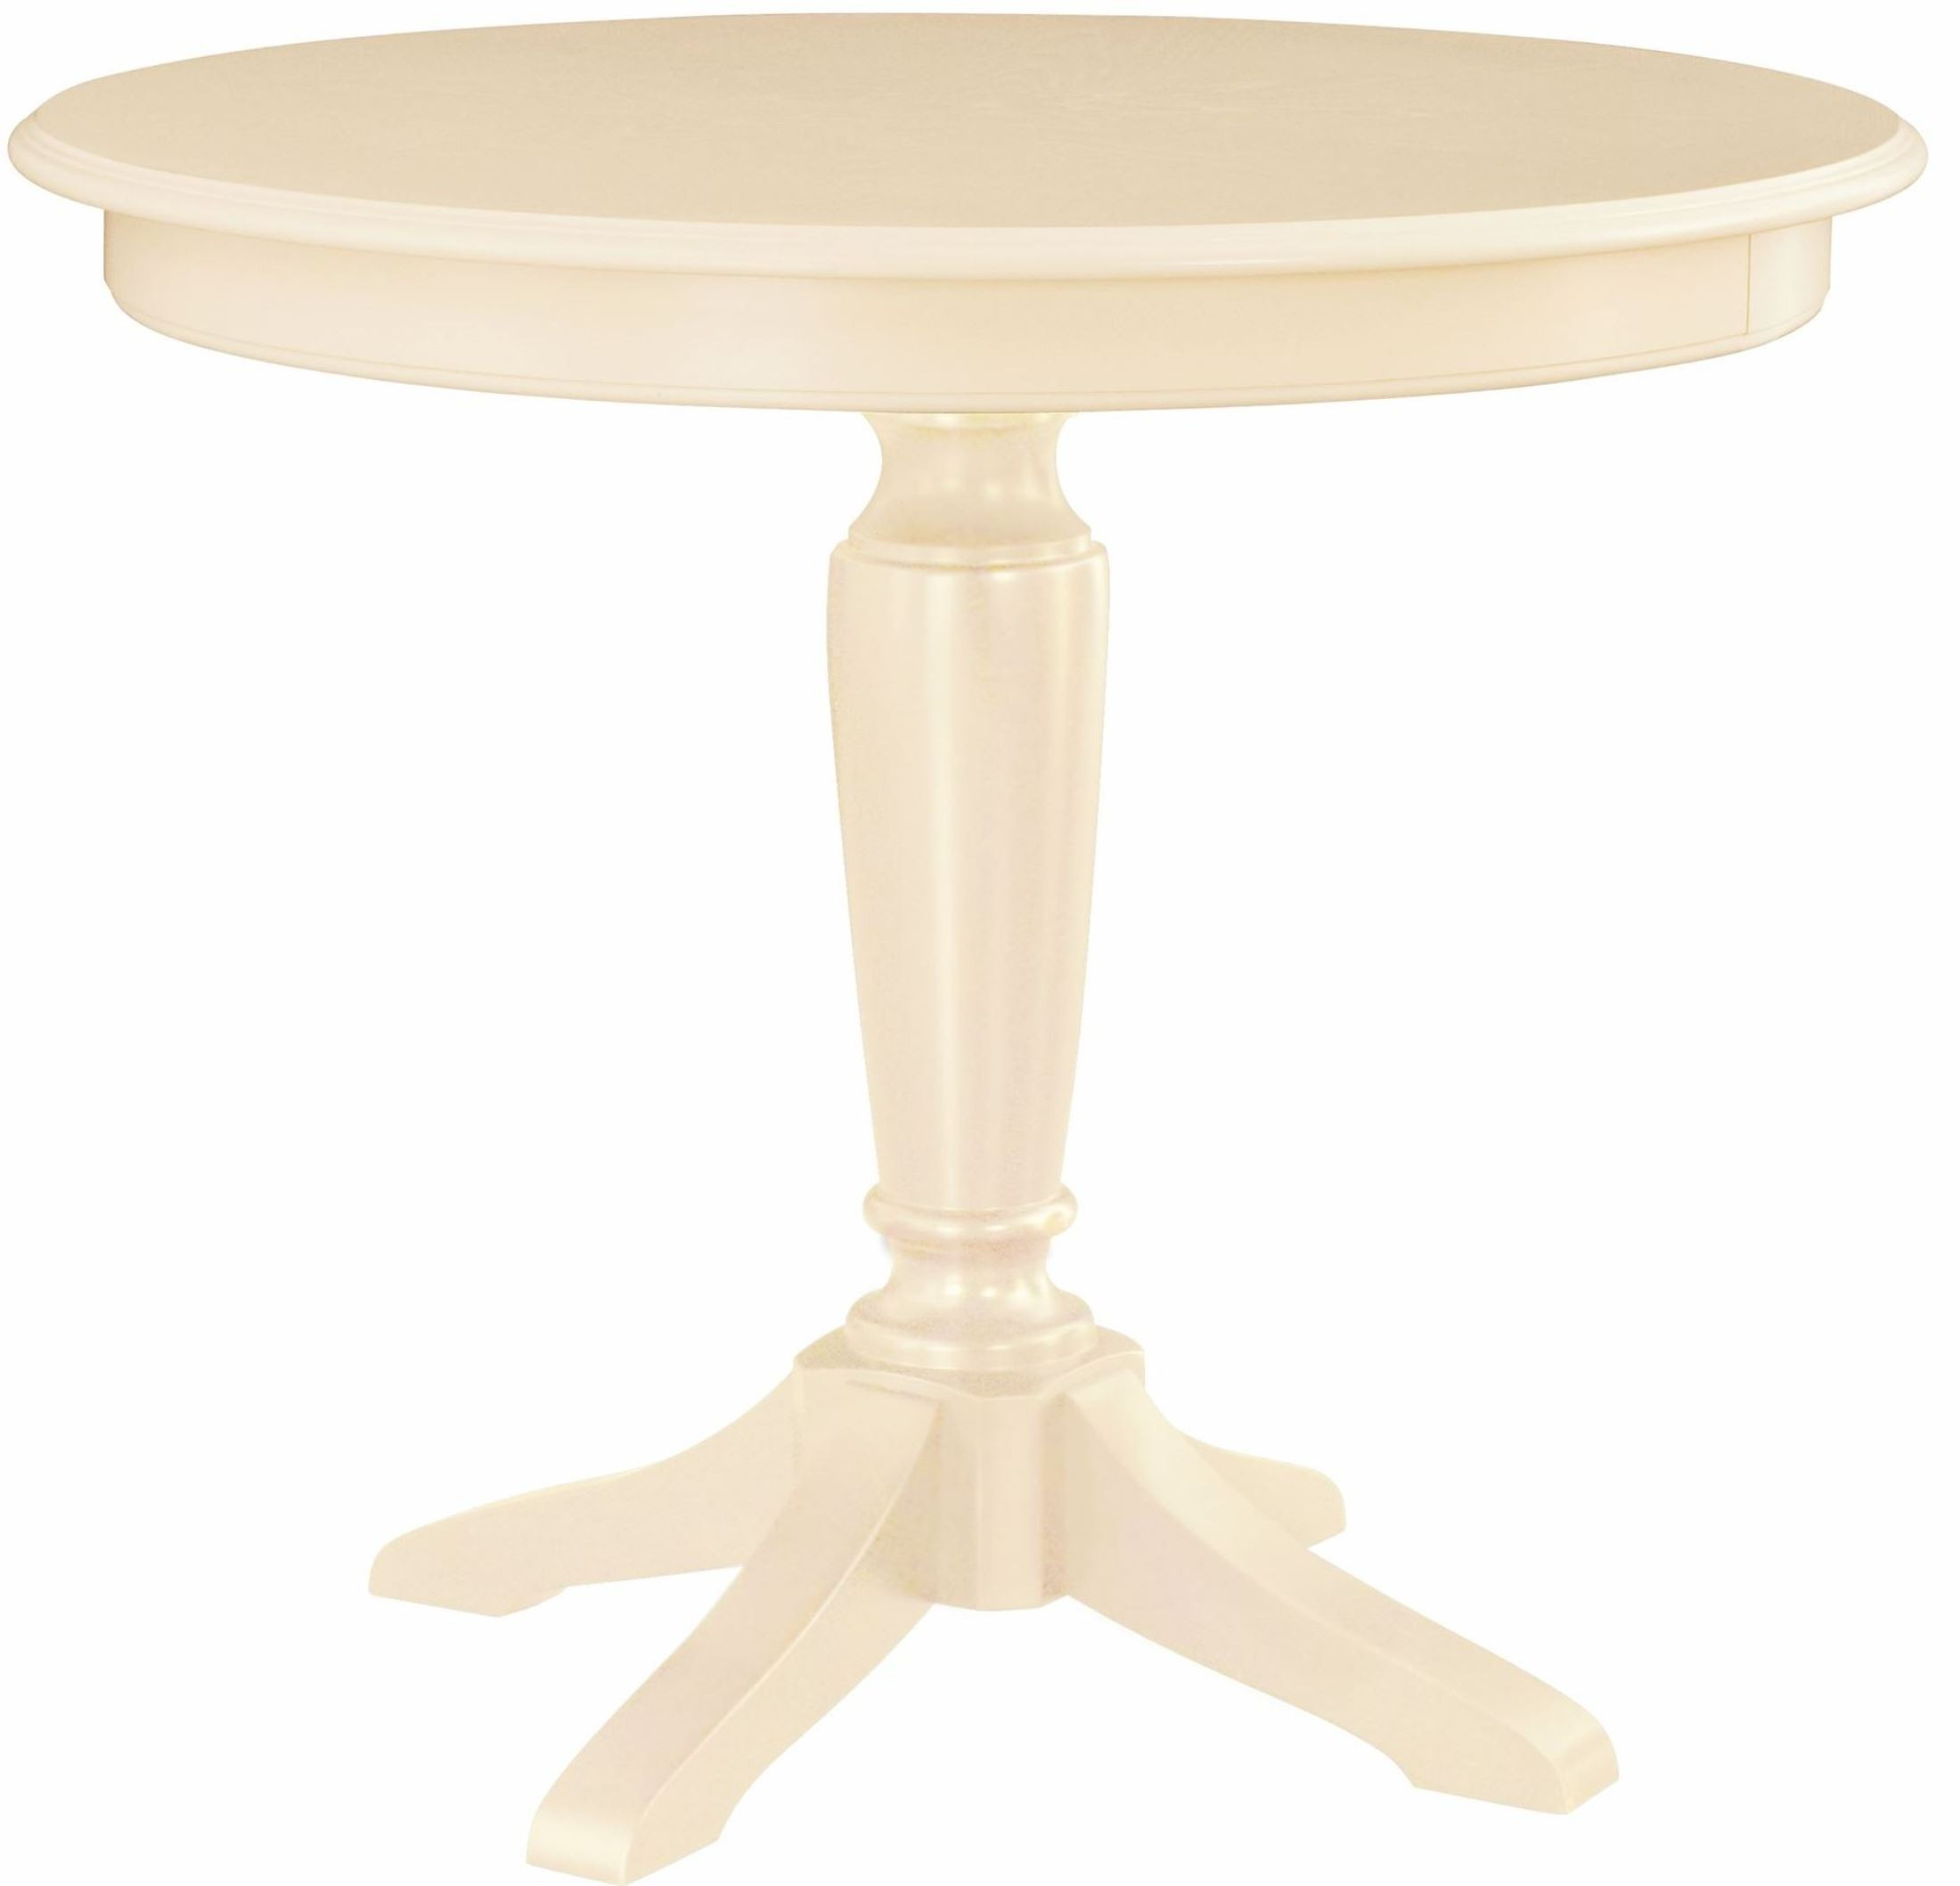 Camden Buttermilk Round Counter Height Pedestal Dining For Latest Nakano Counter Height Pedestal Dining Tables (View 13 of 15)